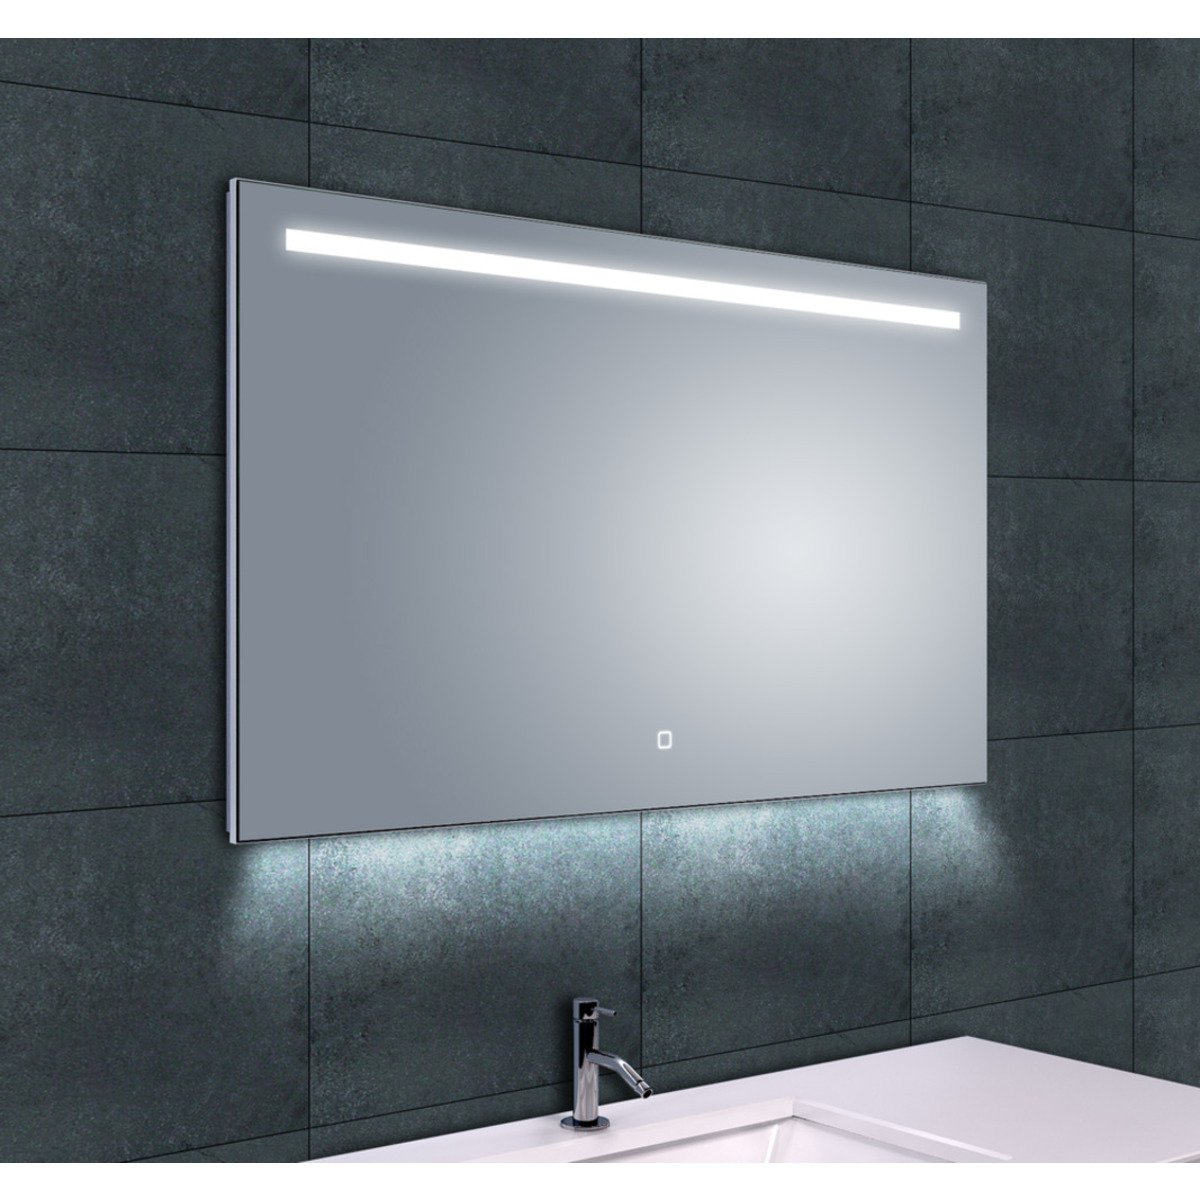 praya ambi one miroir avec led intensit r glable anti. Black Bedroom Furniture Sets. Home Design Ideas